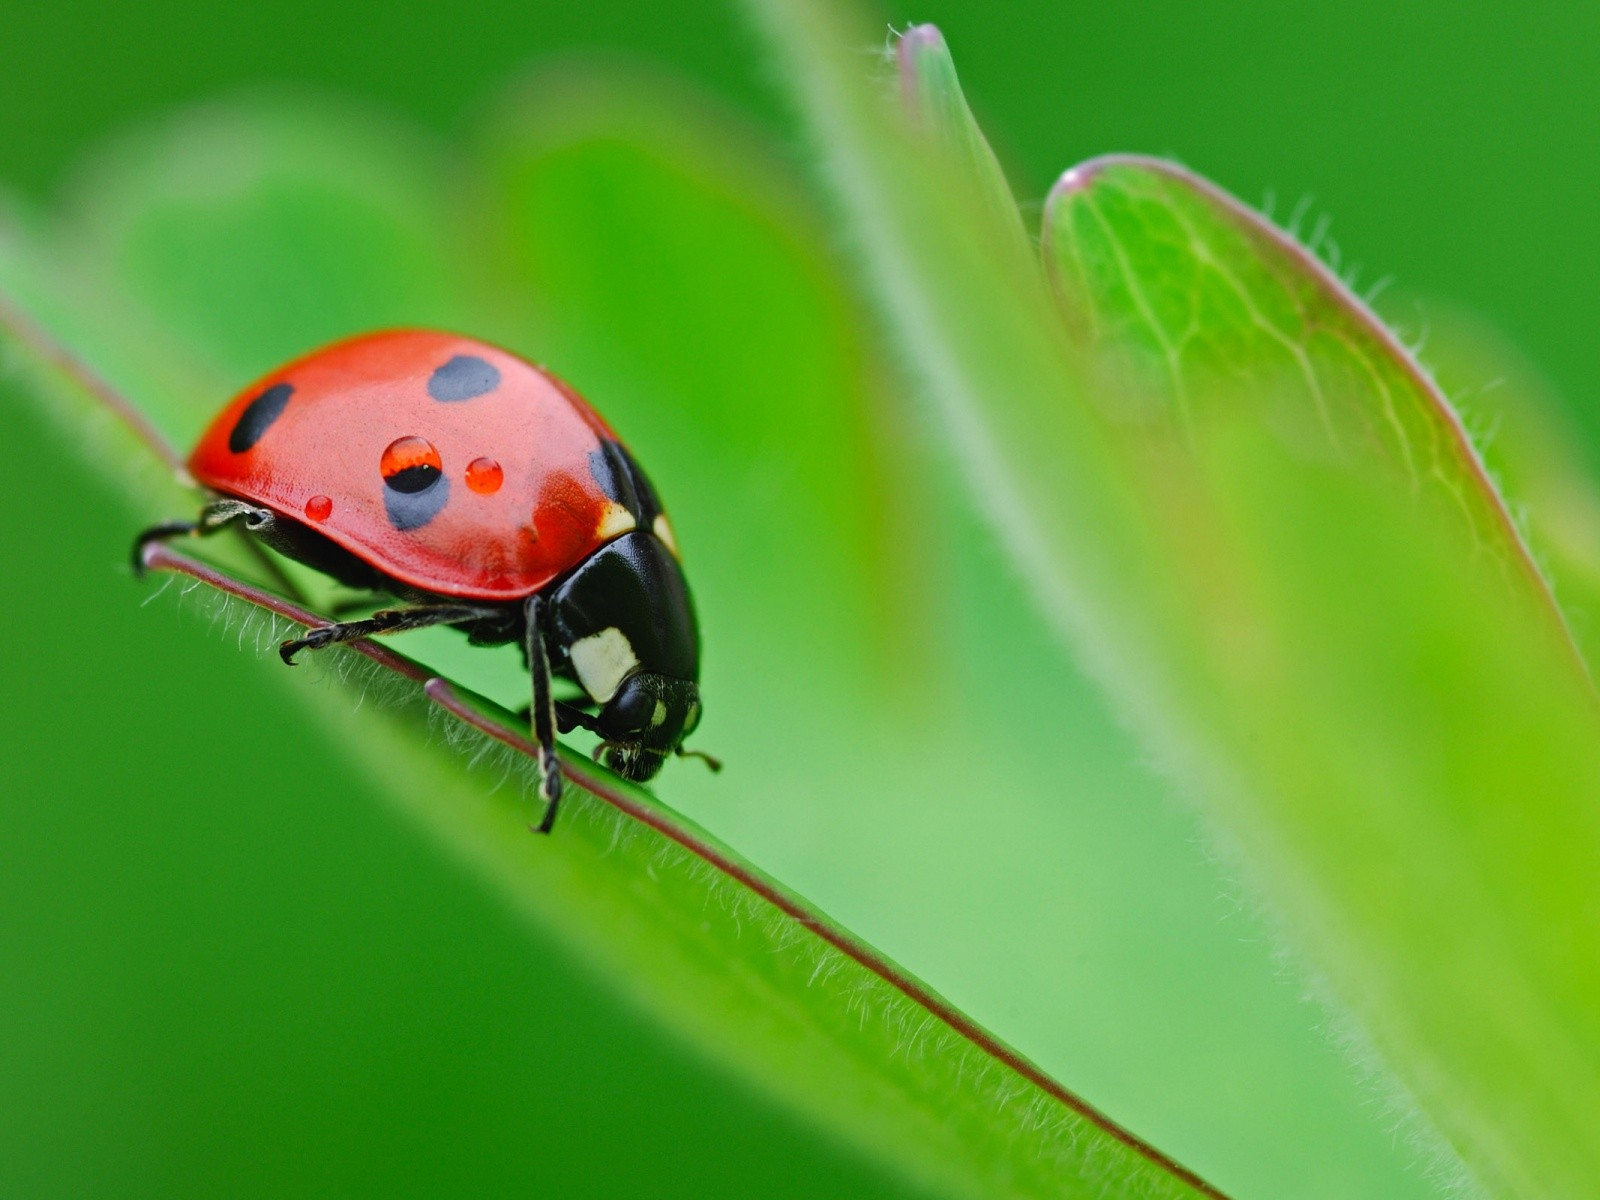 Wallpaper green background - Ladybug